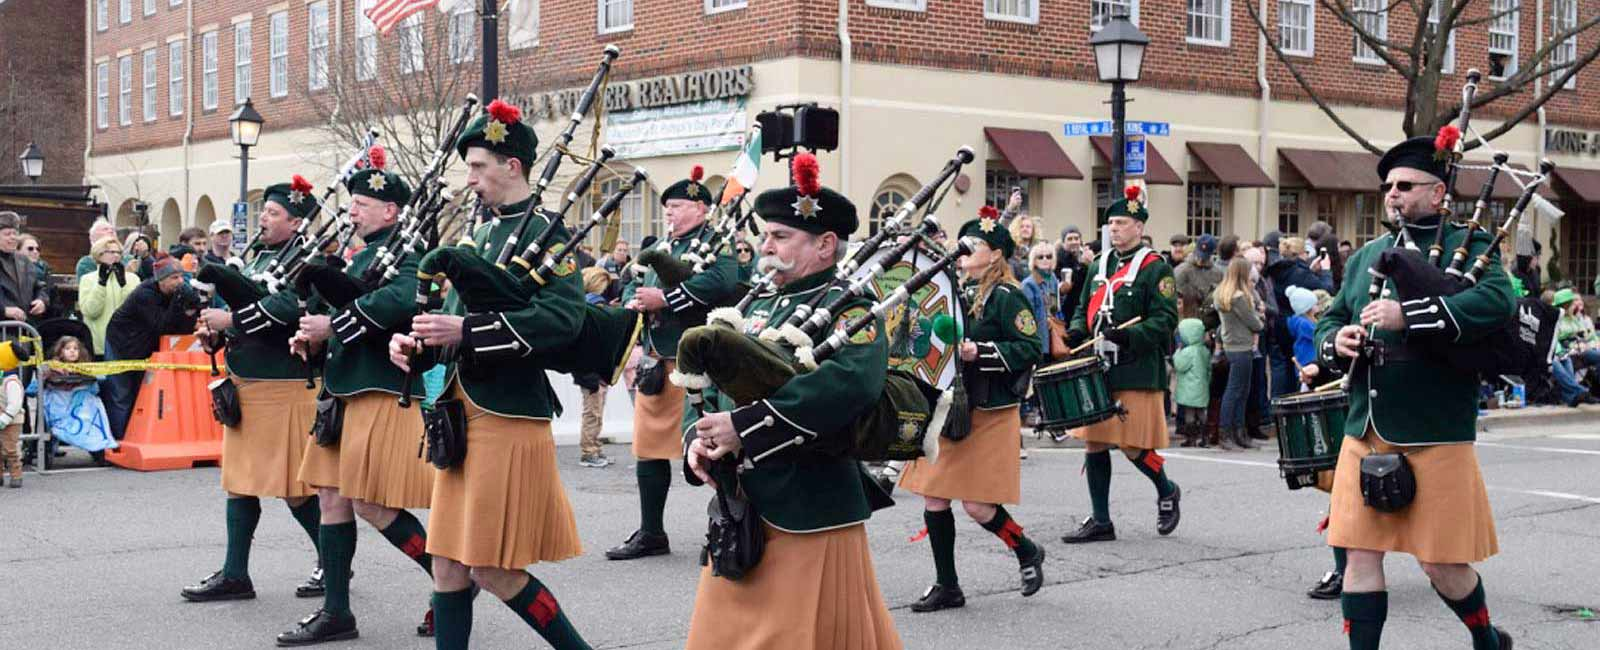 Saint Patrick's Day Parade in Old Town, Alexandria, Virginia - The Ballyshaners, Inc.